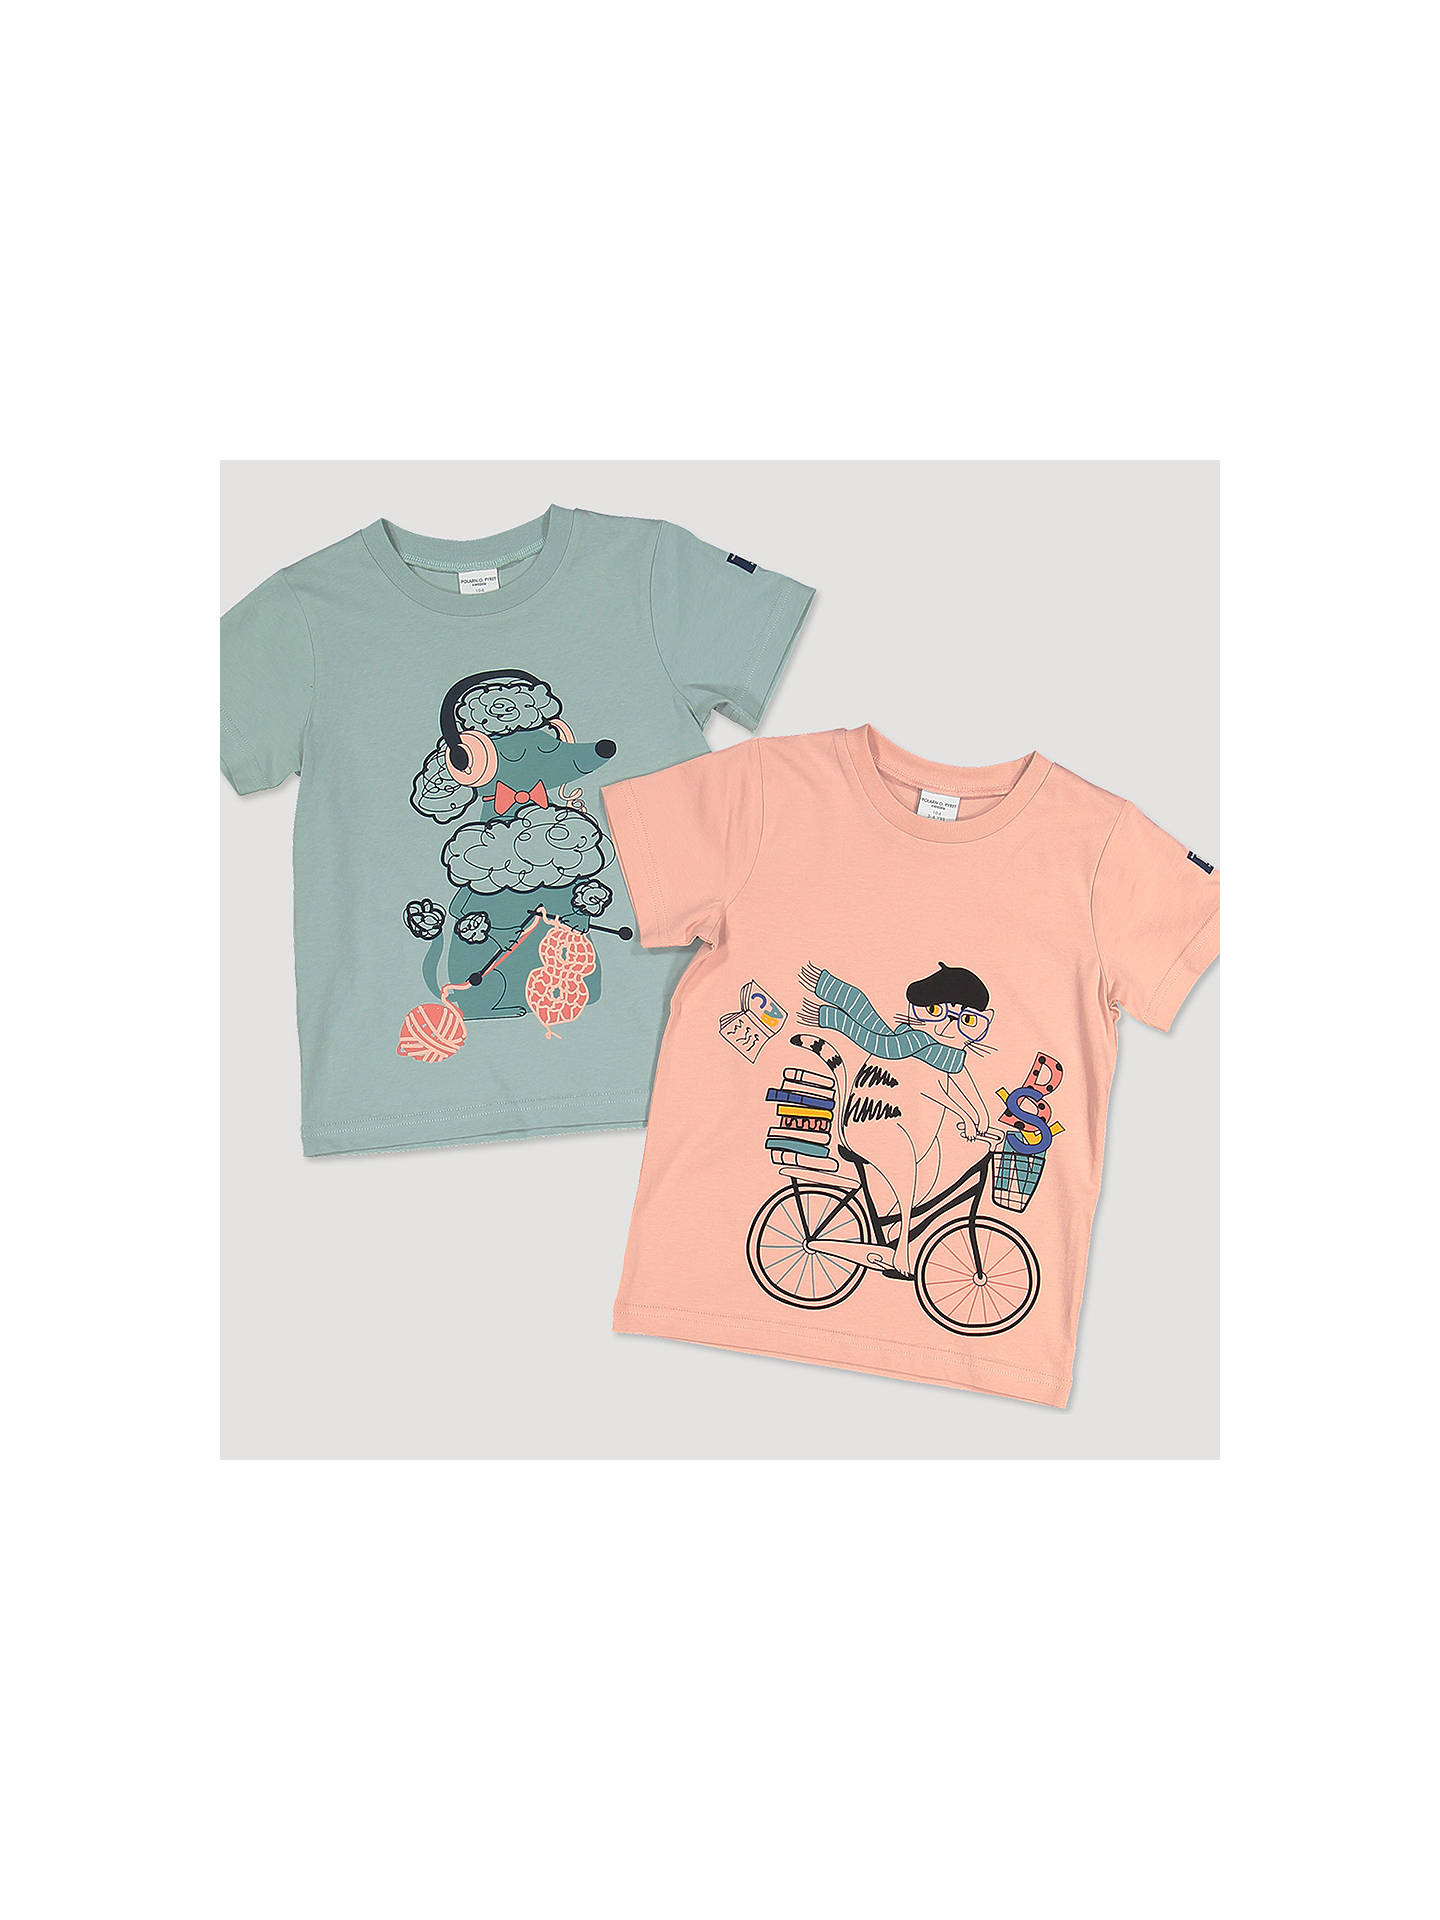 BuyPolarn O. Pyret Baby GOTS Organic Cotton Poodle Graphic T-Shirt, Green, 12-18 months Online at johnlewis.com